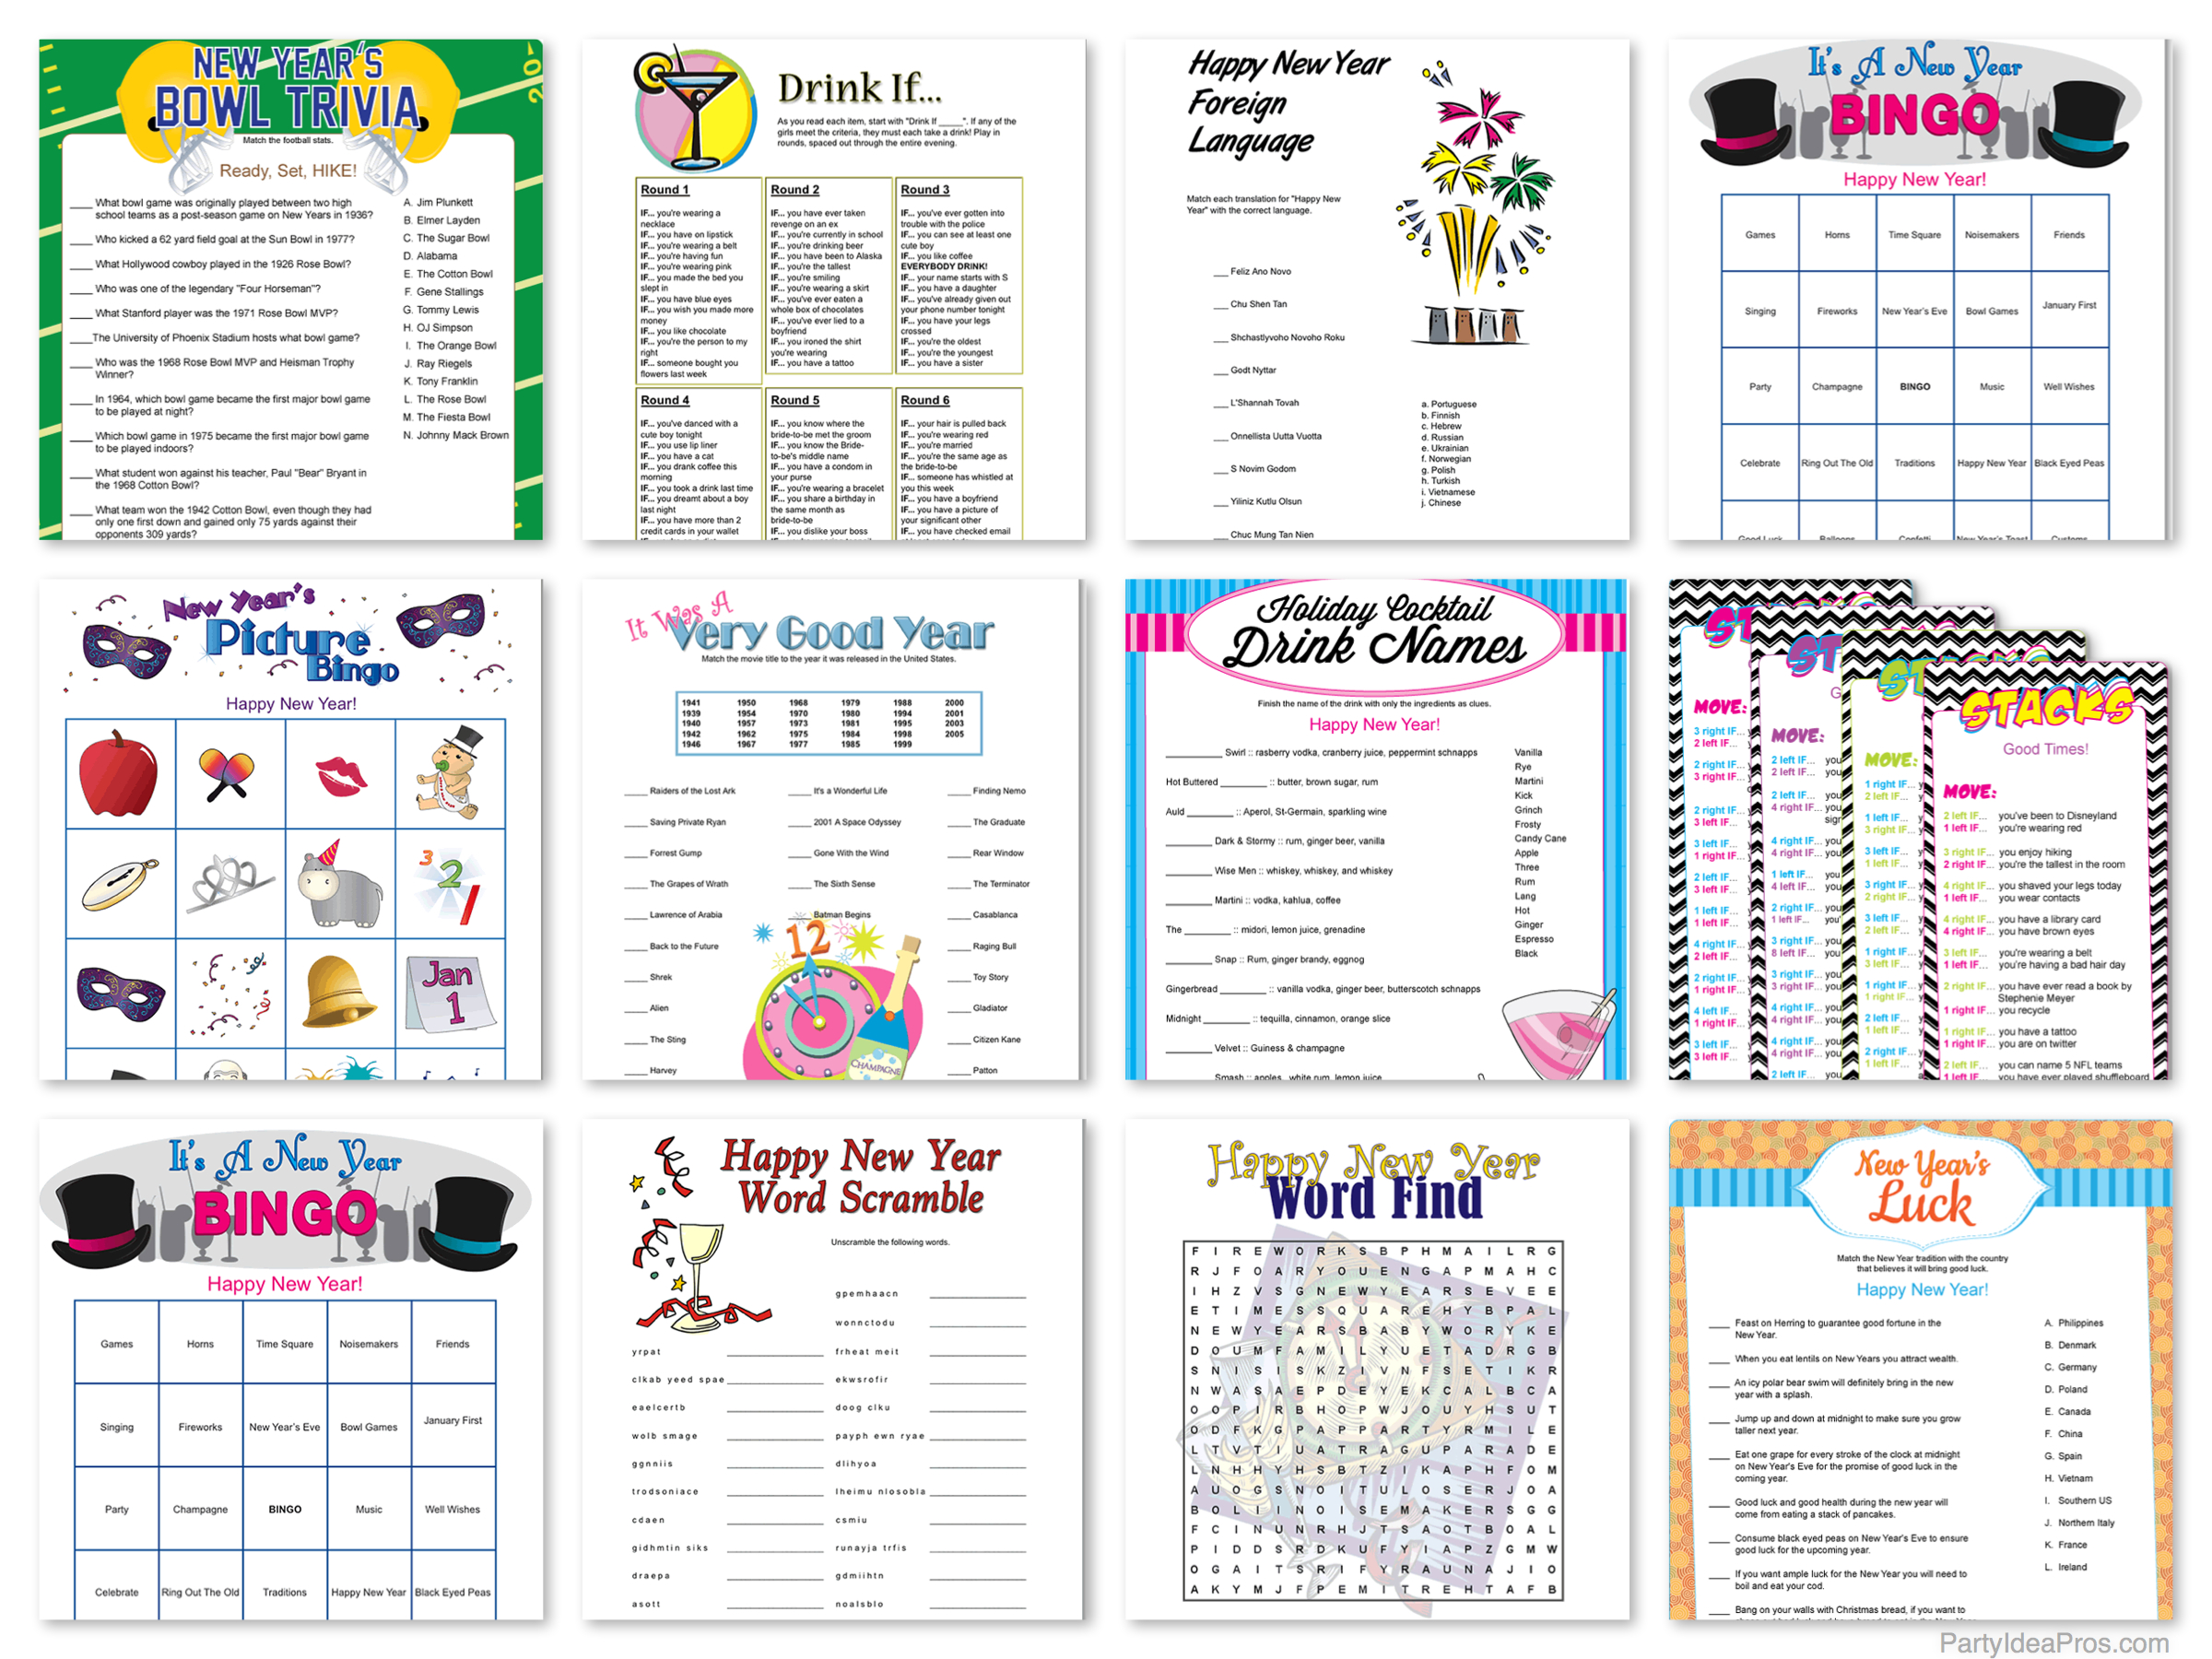 7 Images of New Year's Printable Games